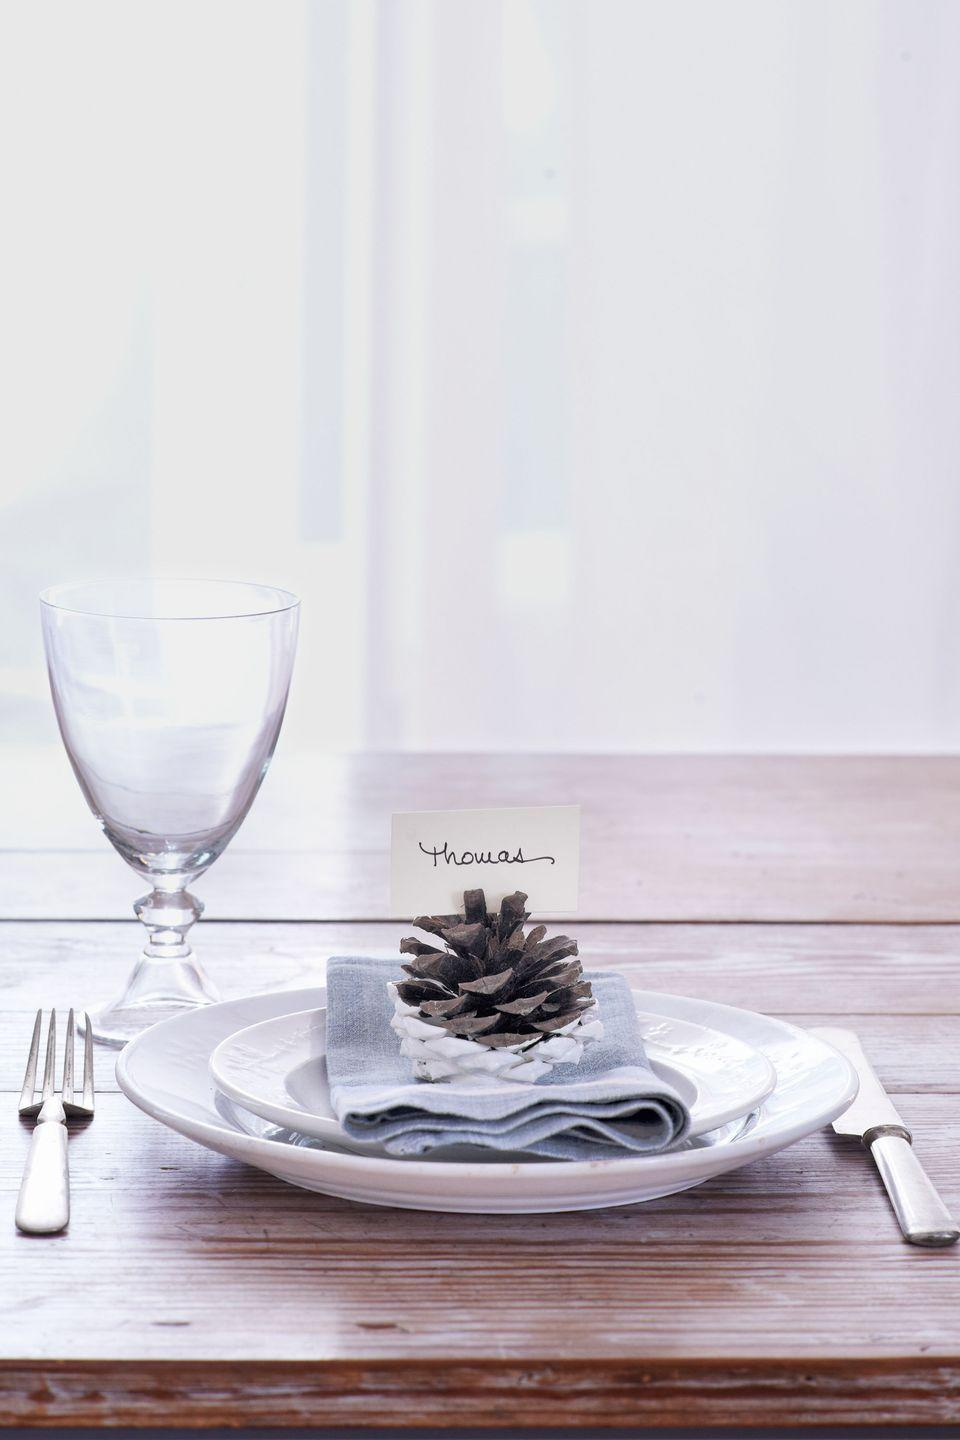 "<p>When dipped in white paint, pinecones take on a more modern appeal, explain the designers behind <a href=""http://www.foragehaberdashery.com/"" rel=""nofollow noopener"" target=""_blank"" data-ylk=""slk:Forage Haberdashery"" class=""link rapid-noclick-resp"">Forage Haberdashery</a>, Shauna Alterio and Stephen Loidolt.</p><p><a class=""link rapid-noclick-resp"" href=""https://www.amazon.com/MagiDeal-Natural-Shooting-Christmas-Decoration/dp/B07FP39XVH?tag=syn-yahoo-20&ascsubtag=%5Bartid%7C10050.g.1538%5Bsrc%7Cyahoo-us"" rel=""nofollow noopener"" target=""_blank"" data-ylk=""slk:SHOP PINECONES"">SHOP PINECONES</a></p>"